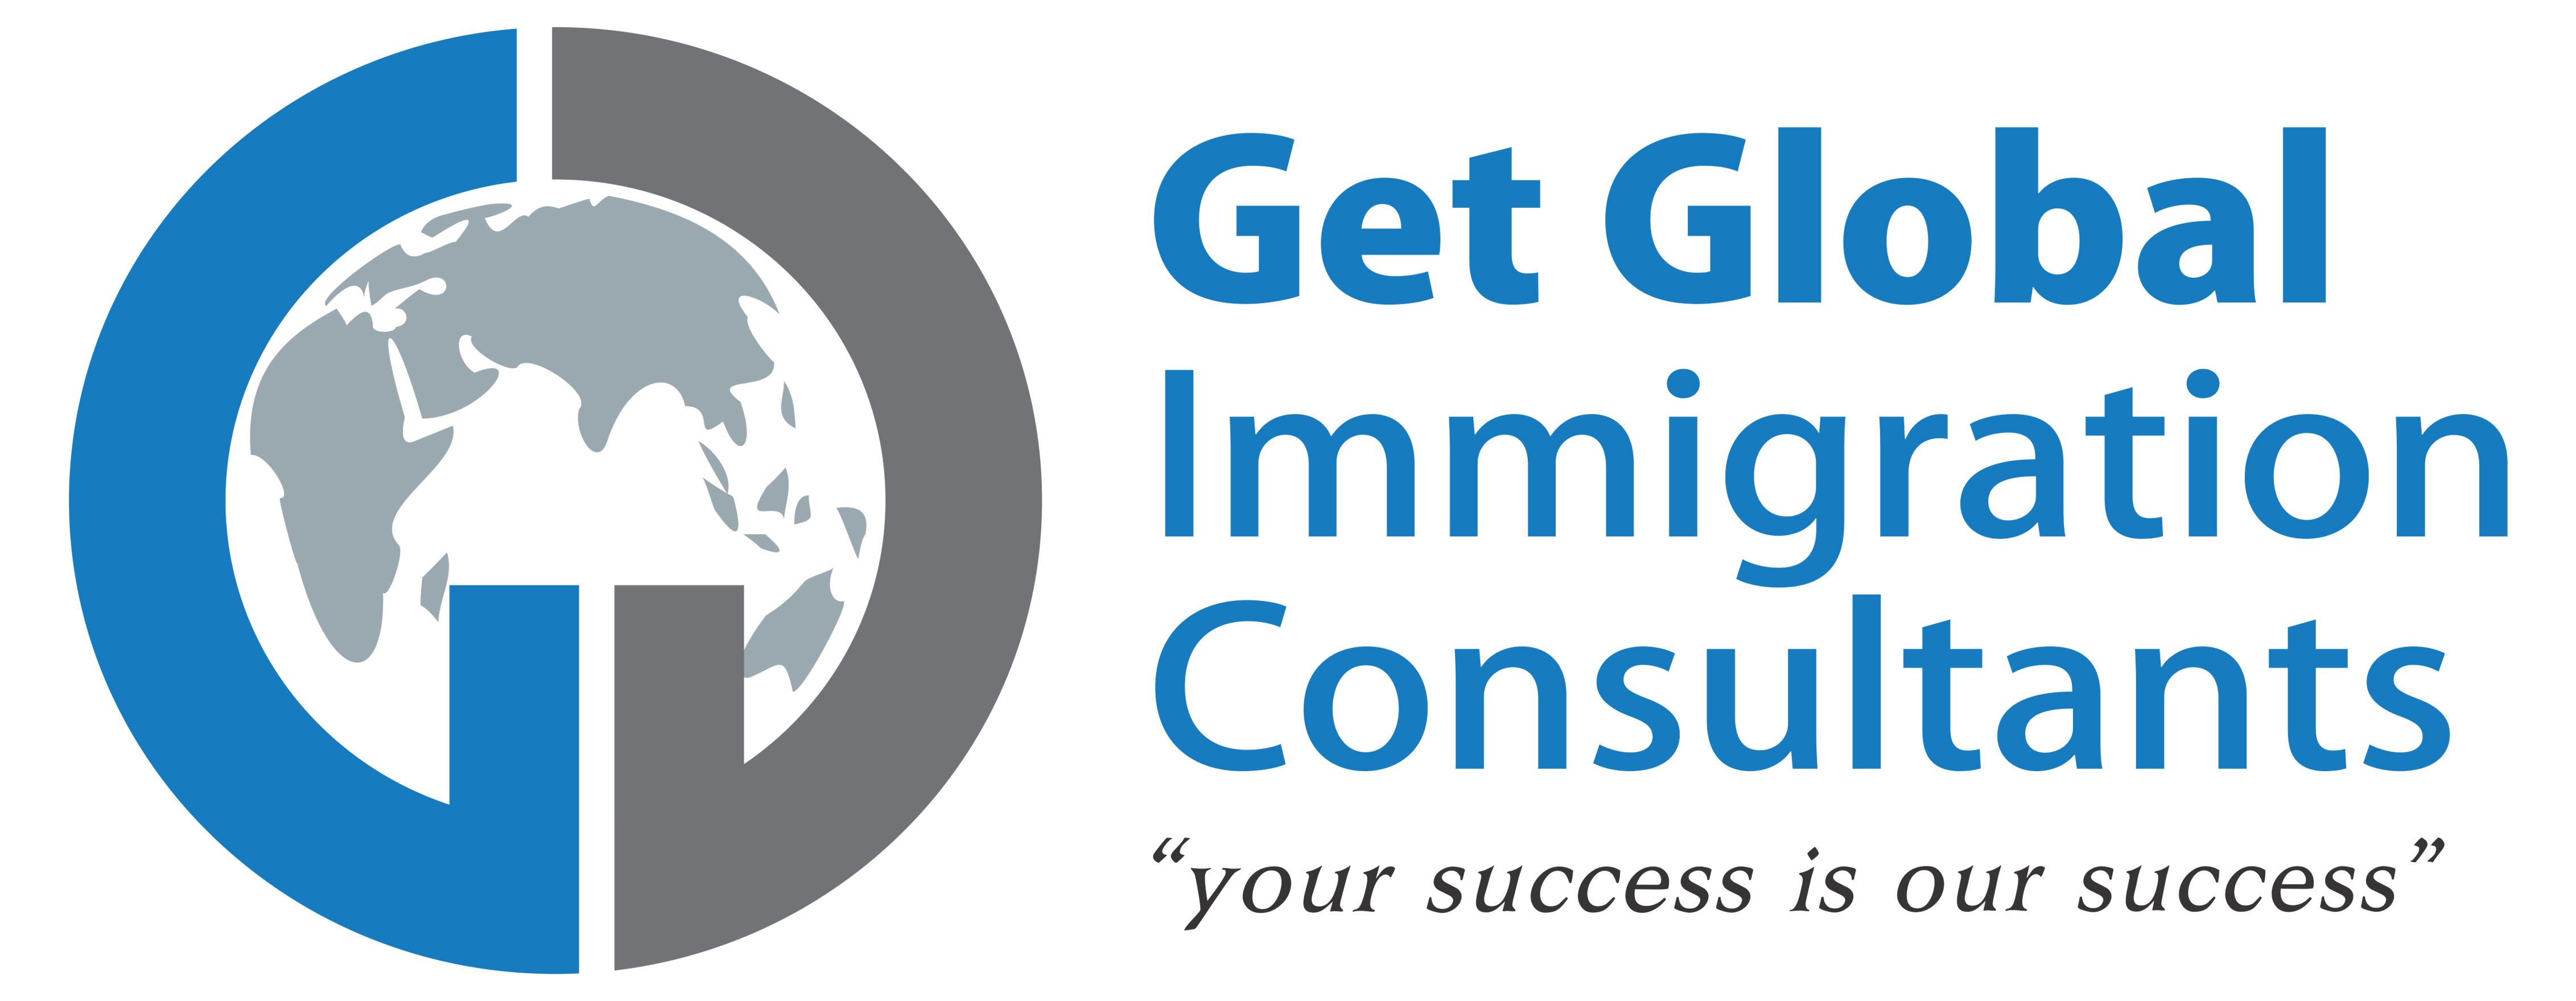 is application for a job in the immigration